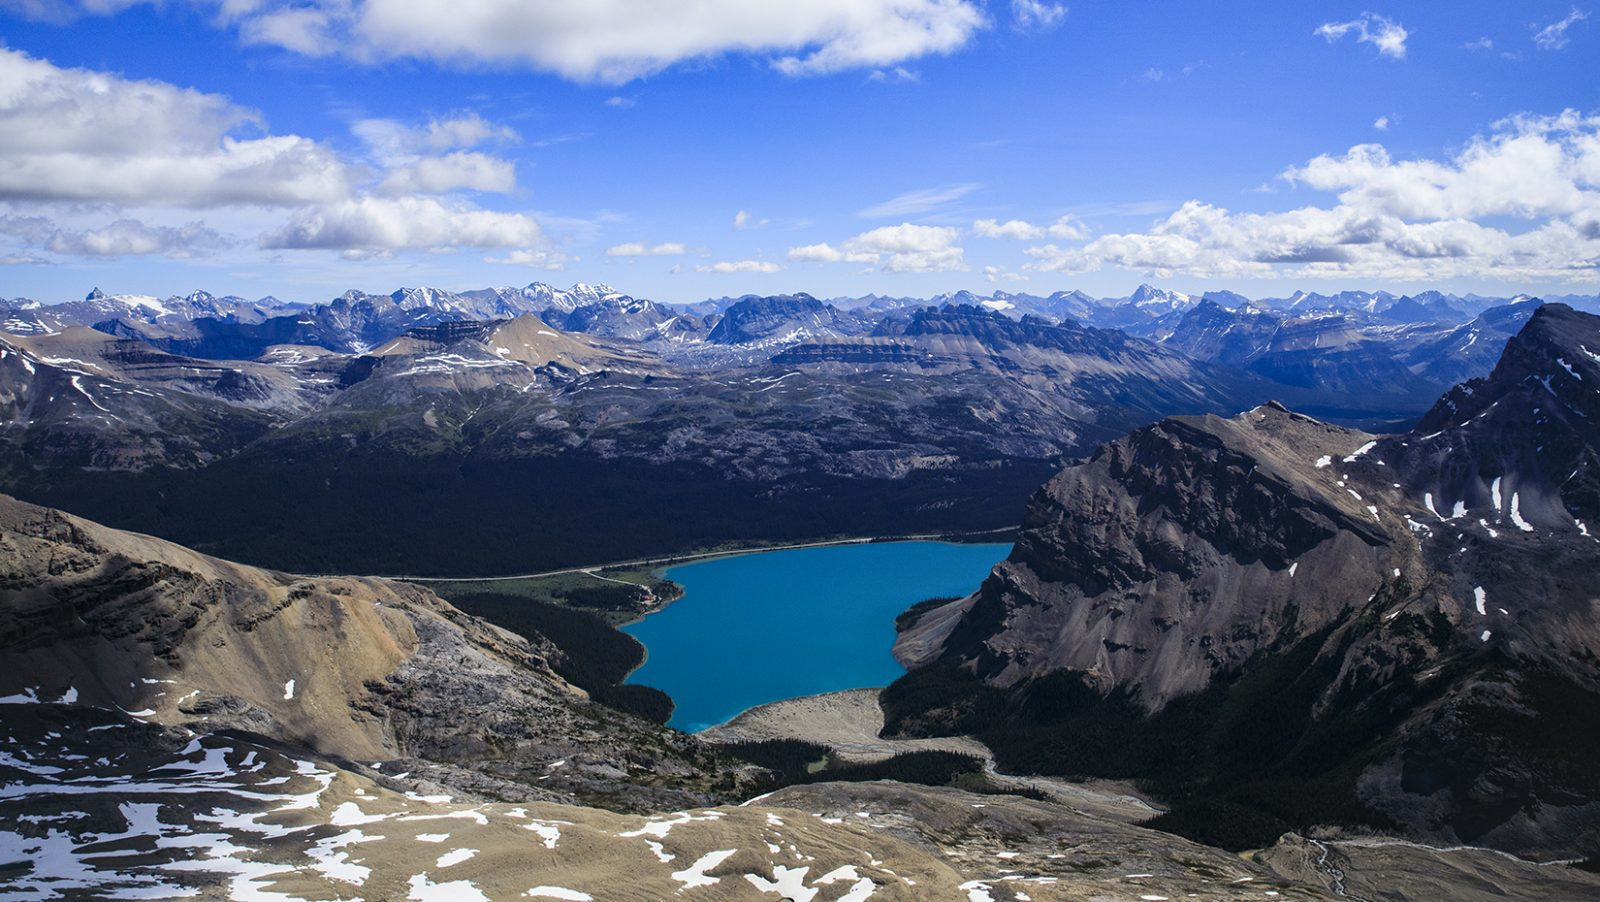 Mount Thompson looking down at Bow Lake